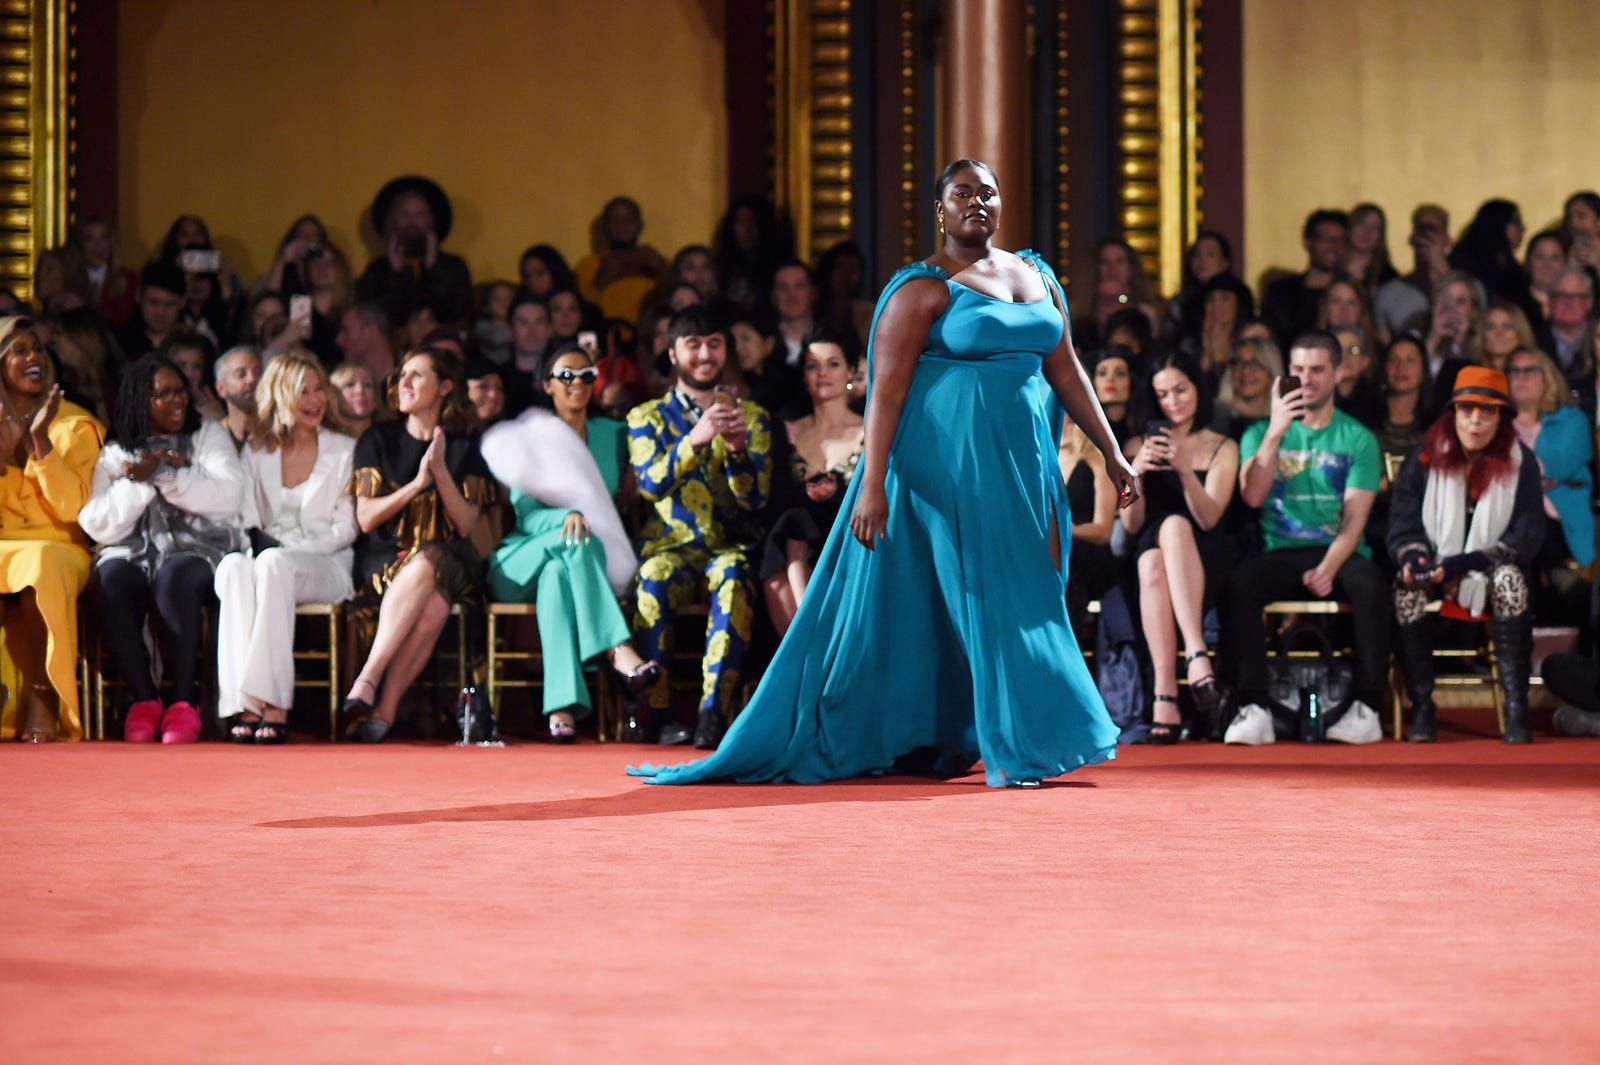 Orange Is the New Black's Danielle Brooks walks the runway for Christian Siriano. (Dimitrios Kambouris/Getty Images)